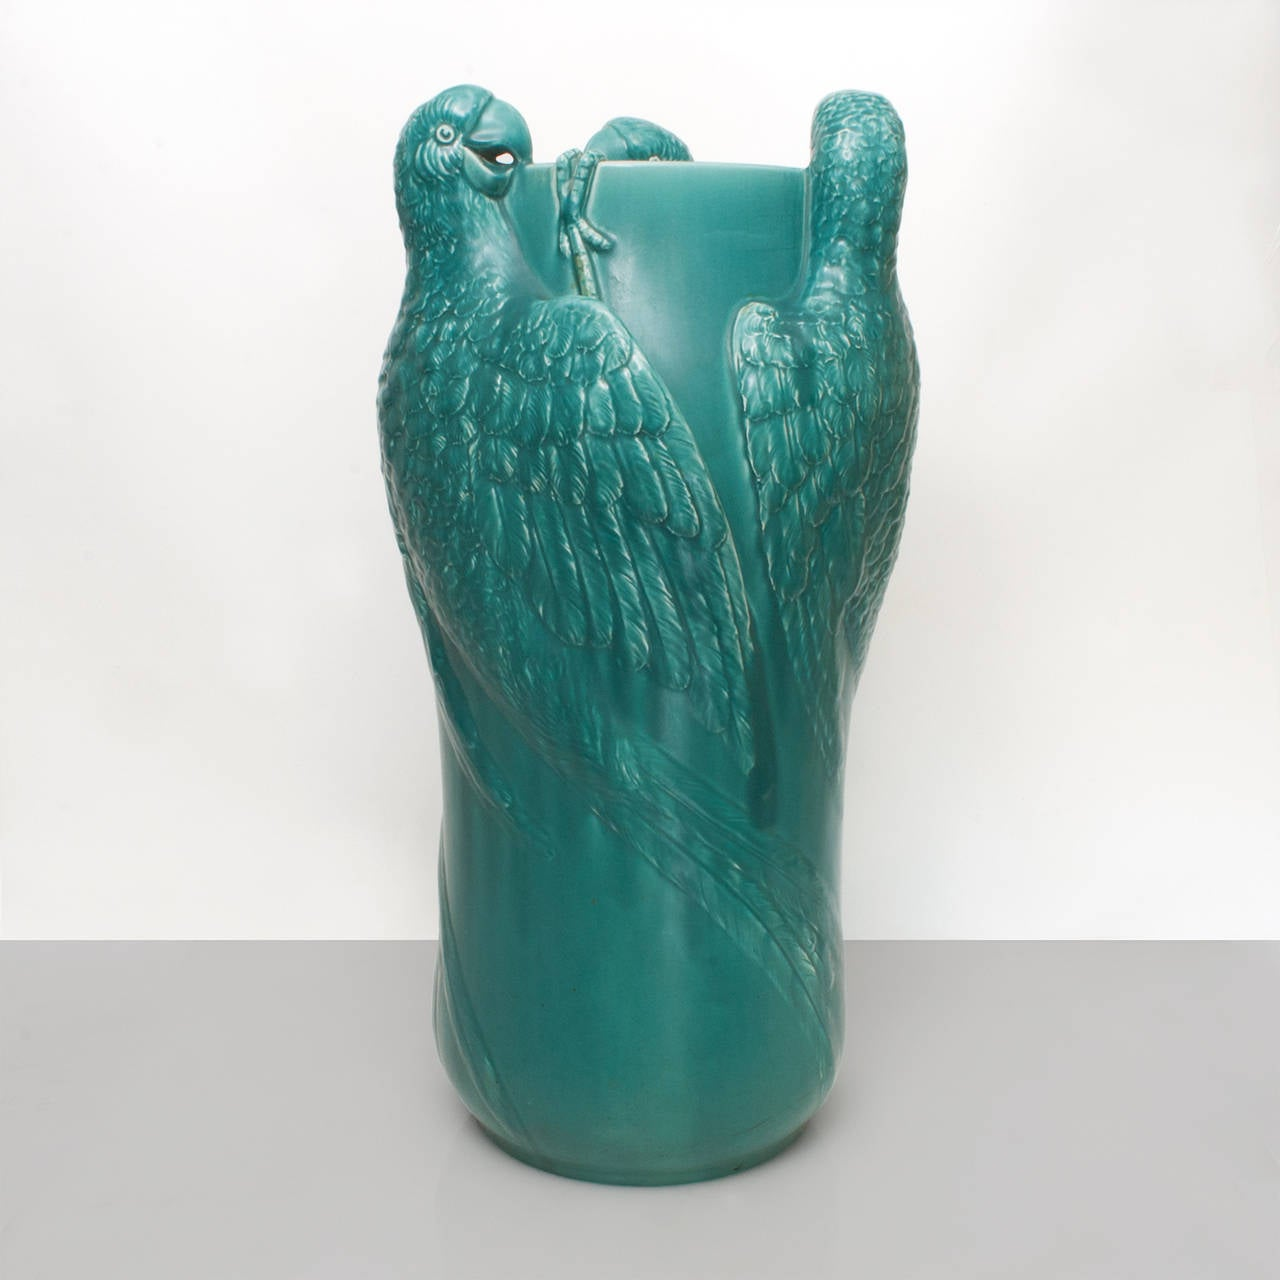 Large remarkable Swedish ceramic umbrella stand or floor vase decorated with three lifesize parrots. Designed by Alf Wallander for Rörstrand, circa 1900s.